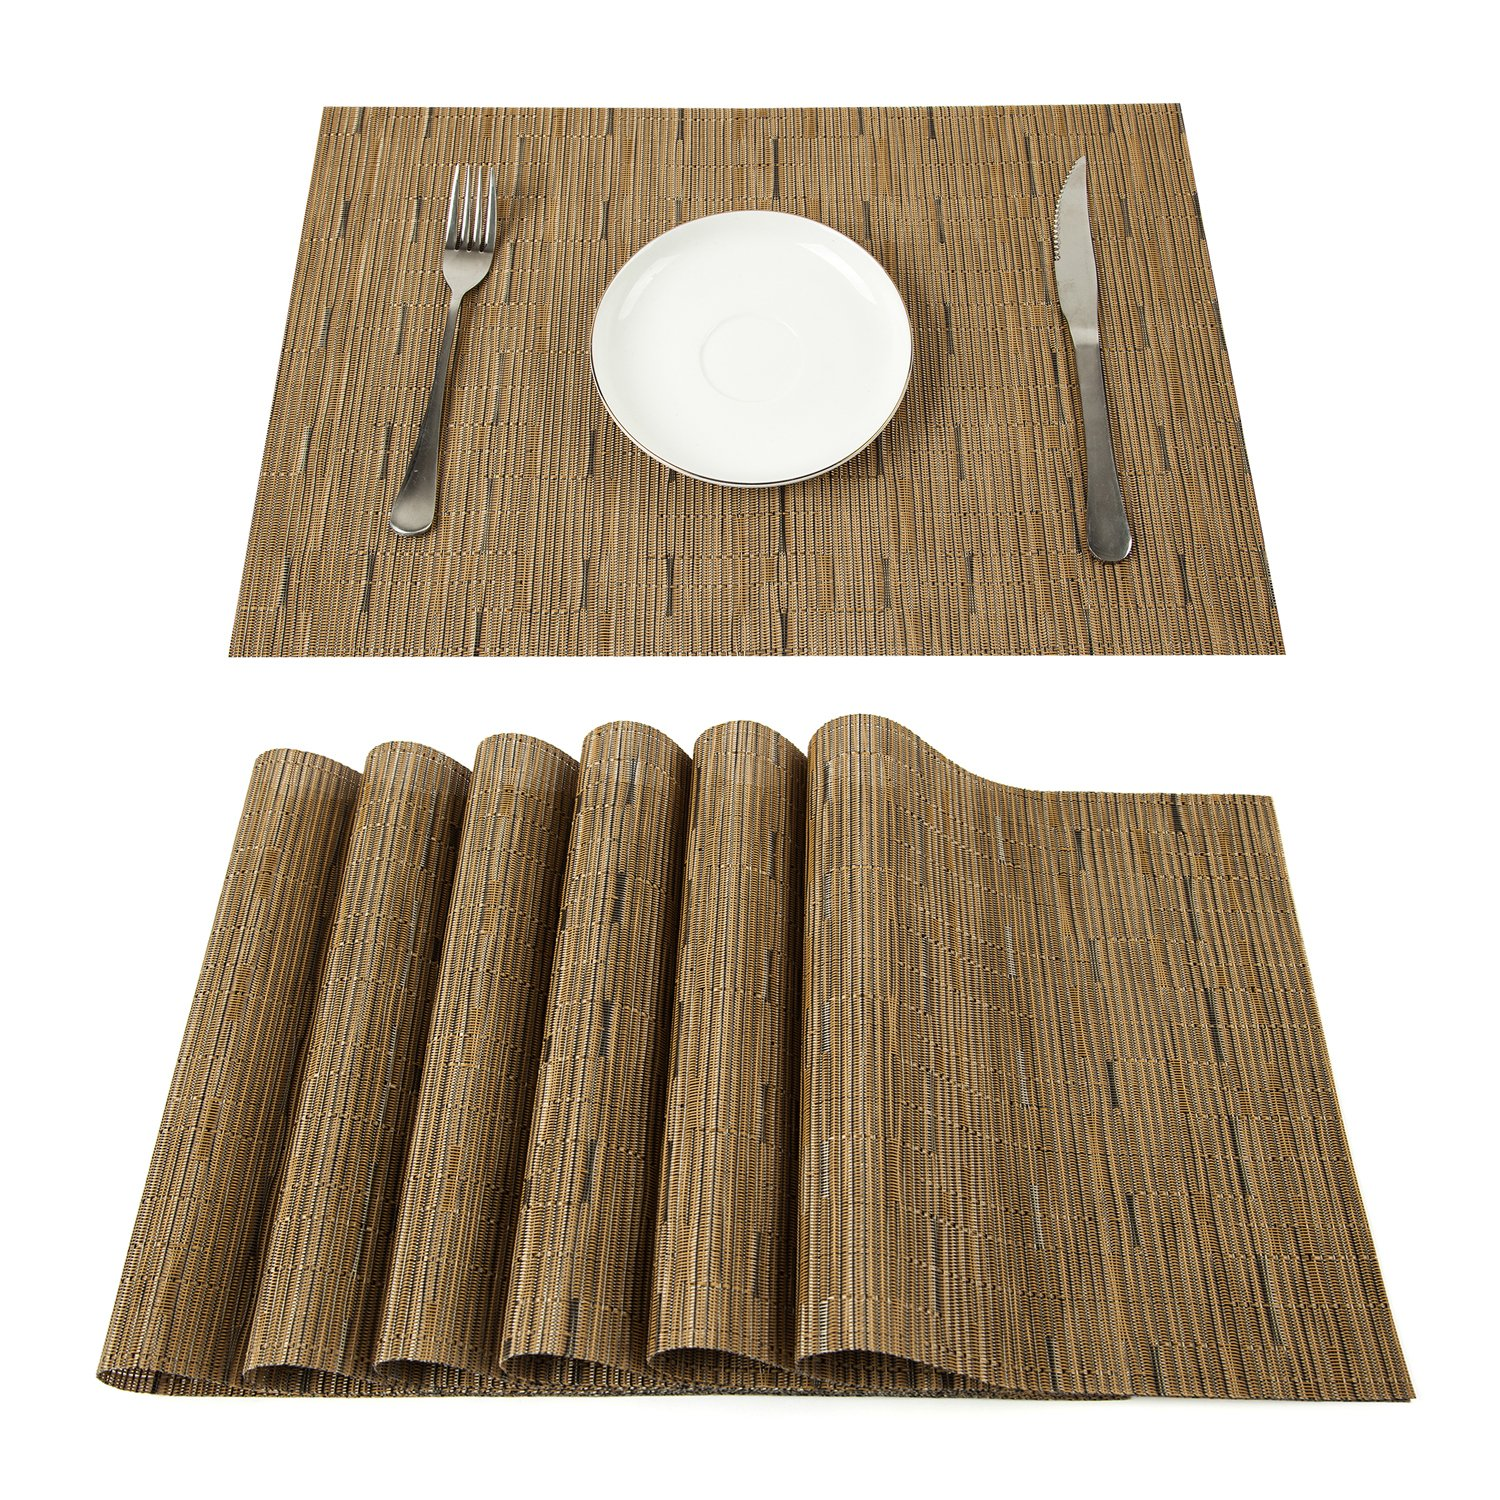 PAUWER Placemats Set of 6 Crossweave Woven Vinyl Placemat for Kitchen Table Heat Resistant Non-slip Kitchen Table Mats Easy to Clean (6, khaki)